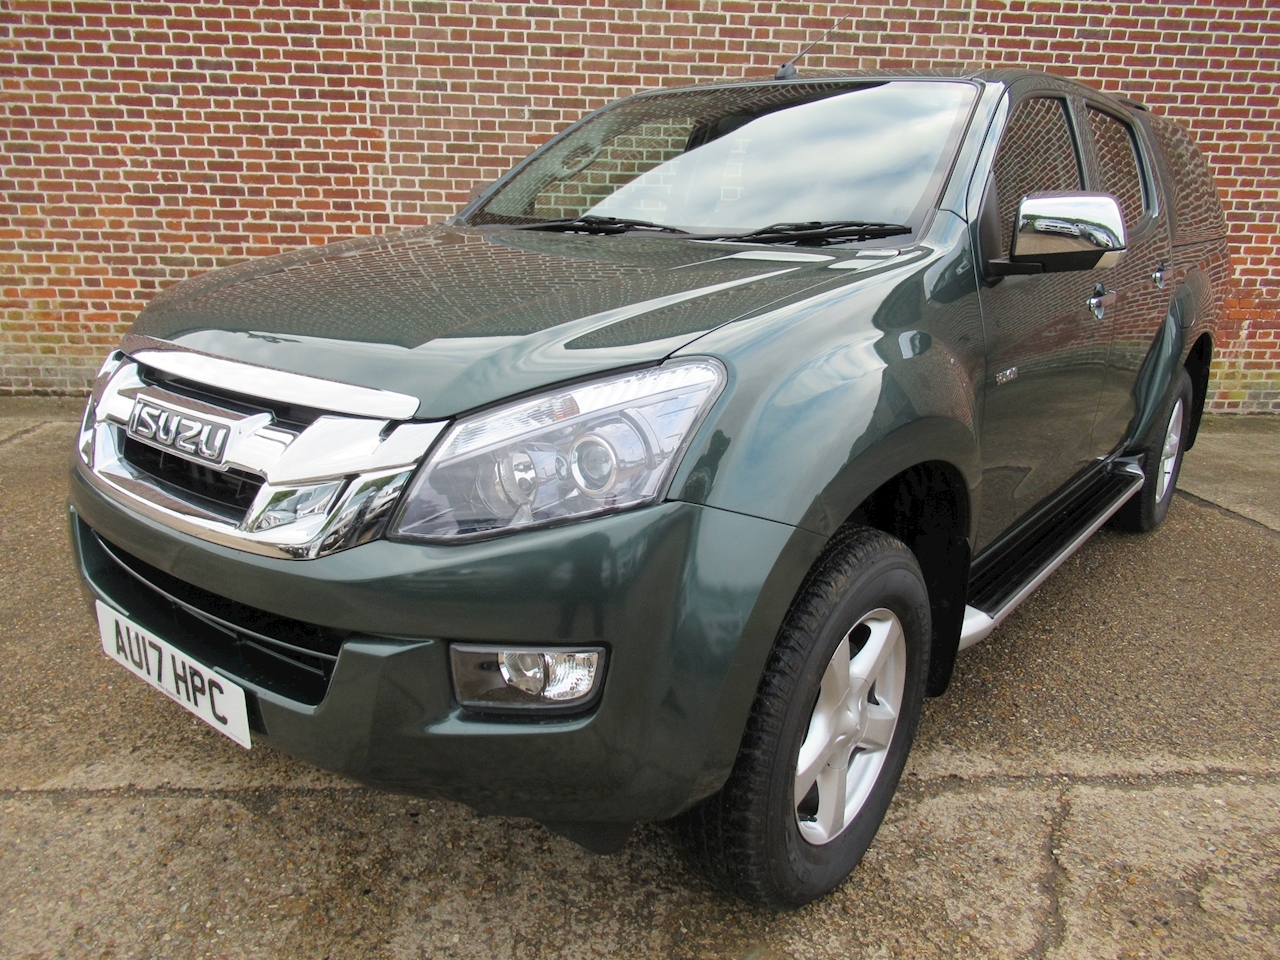 Isuzu D-Max Td Yukon Dcb Pick-Up 2.5 Manual Diesel